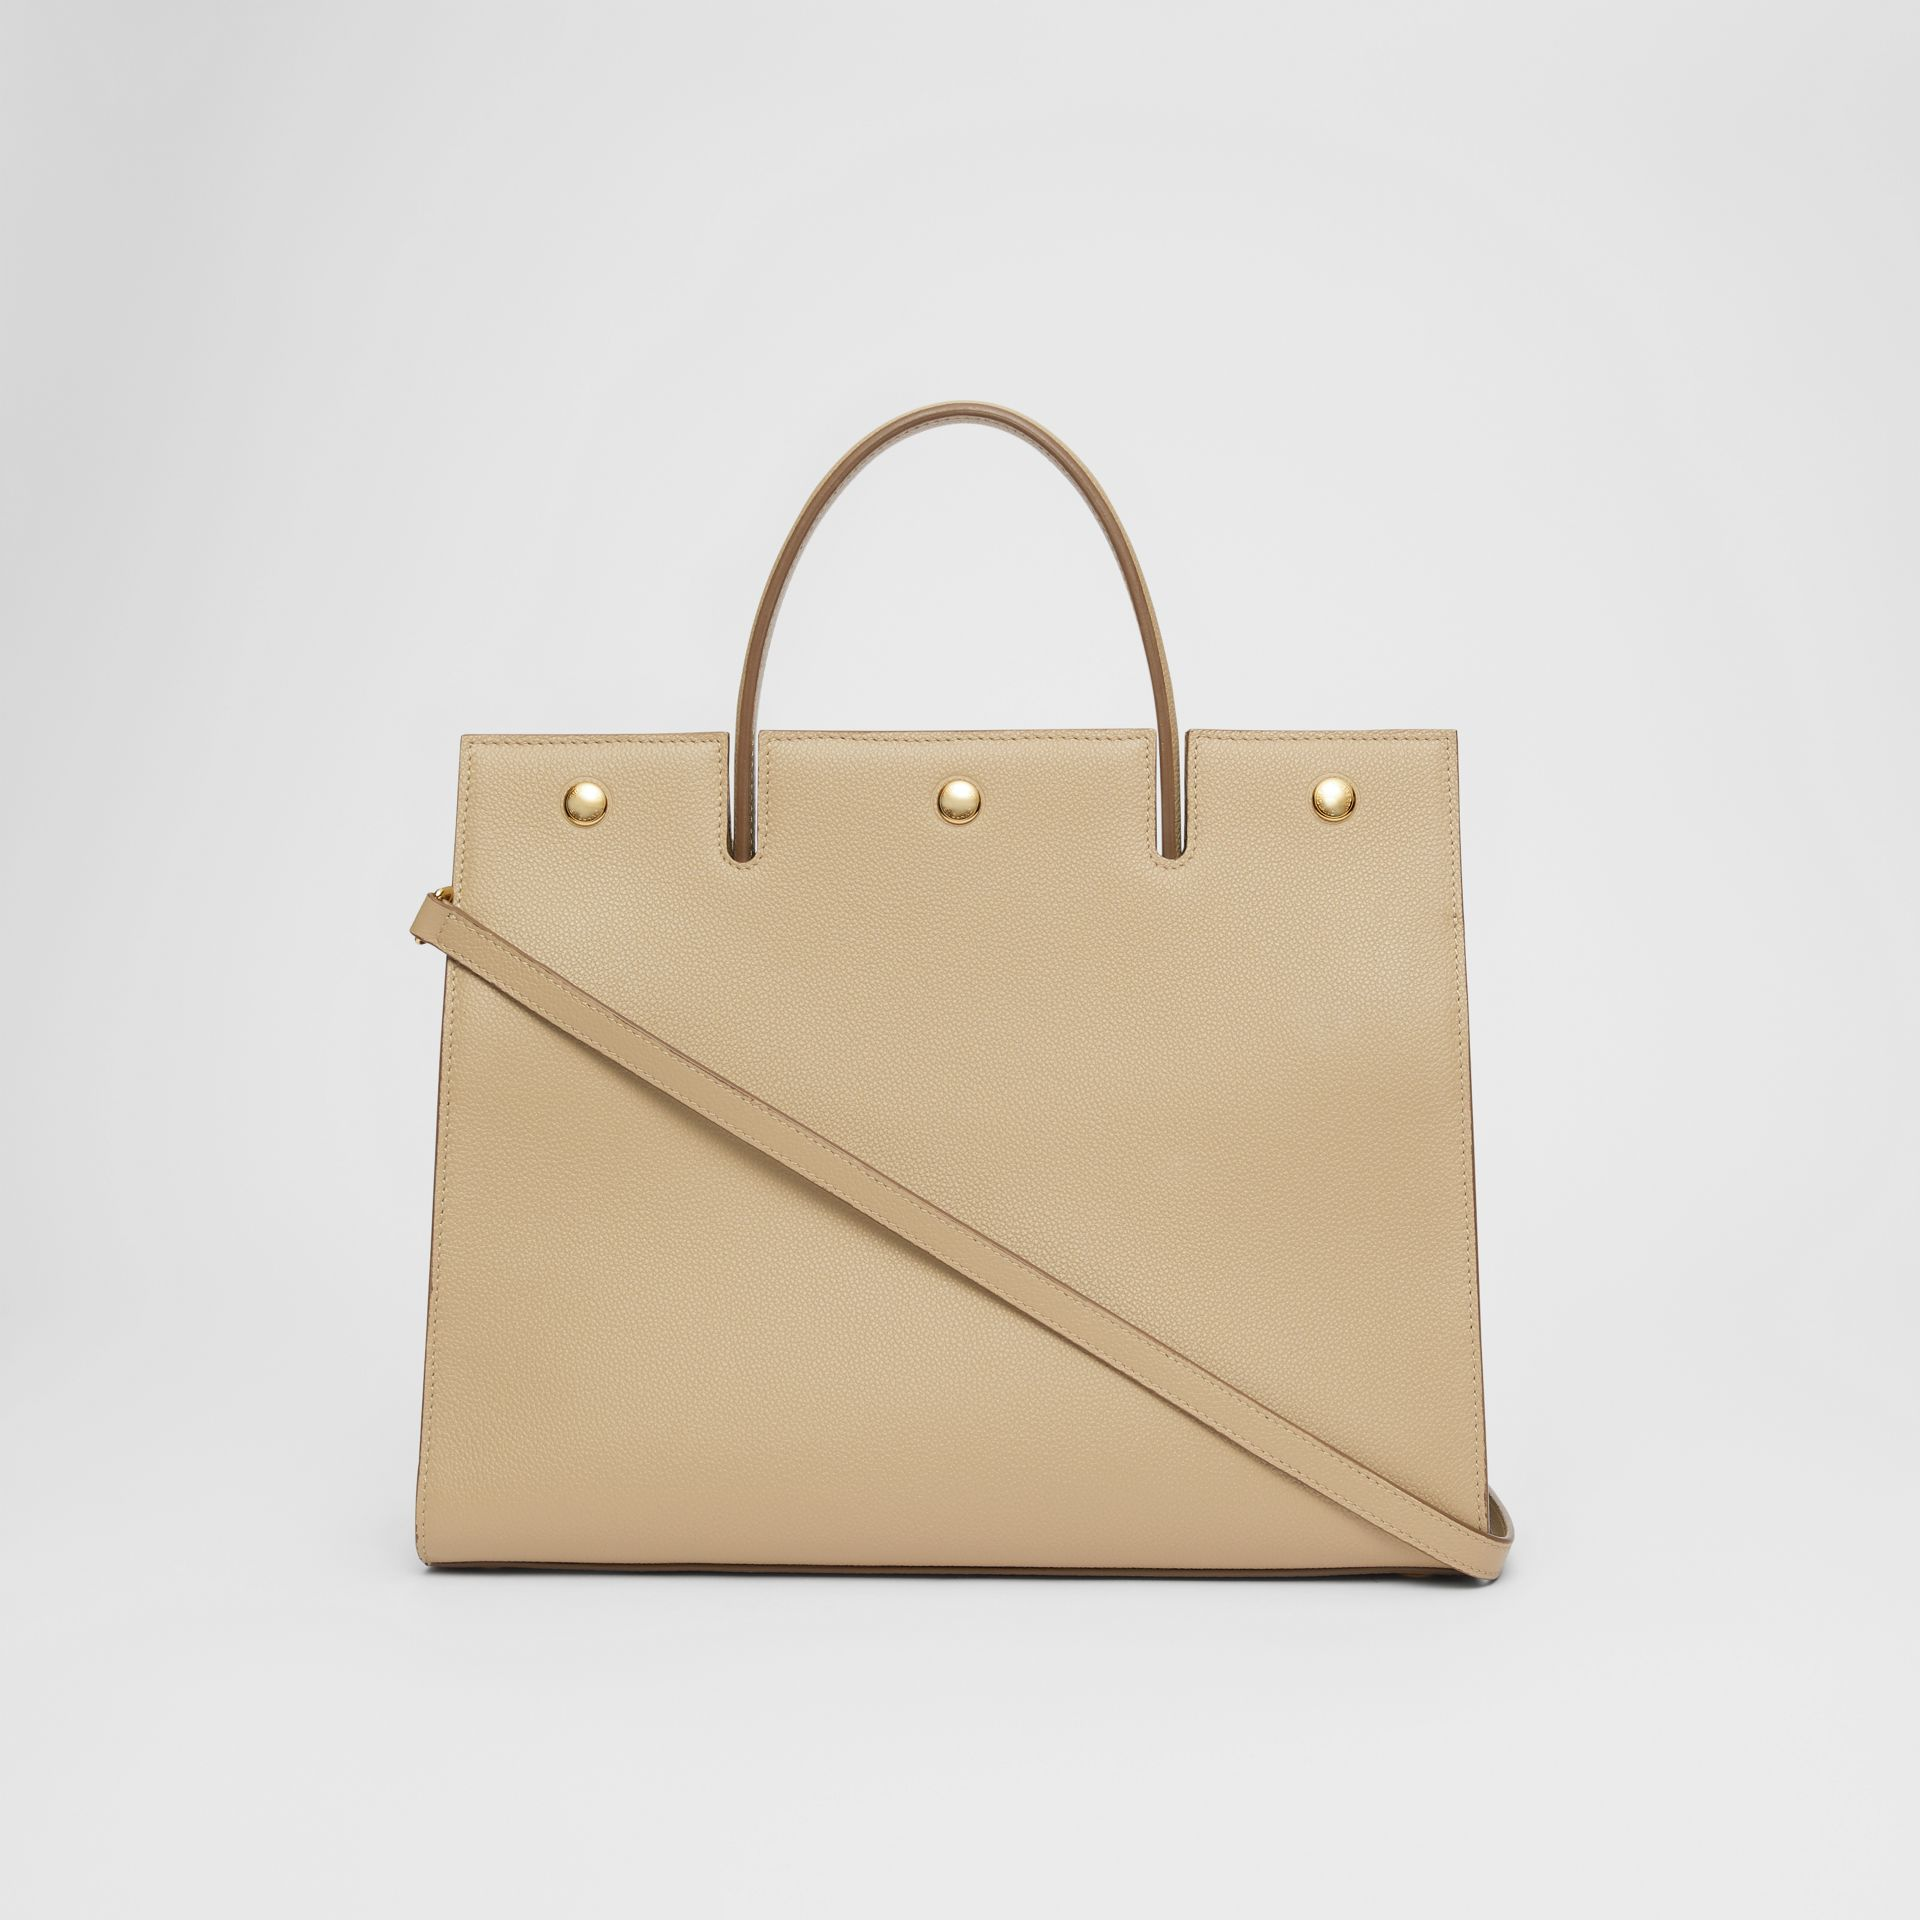 Medium Leather Title Bag in Honey - Women | Burberry United Kingdom - gallery image 7